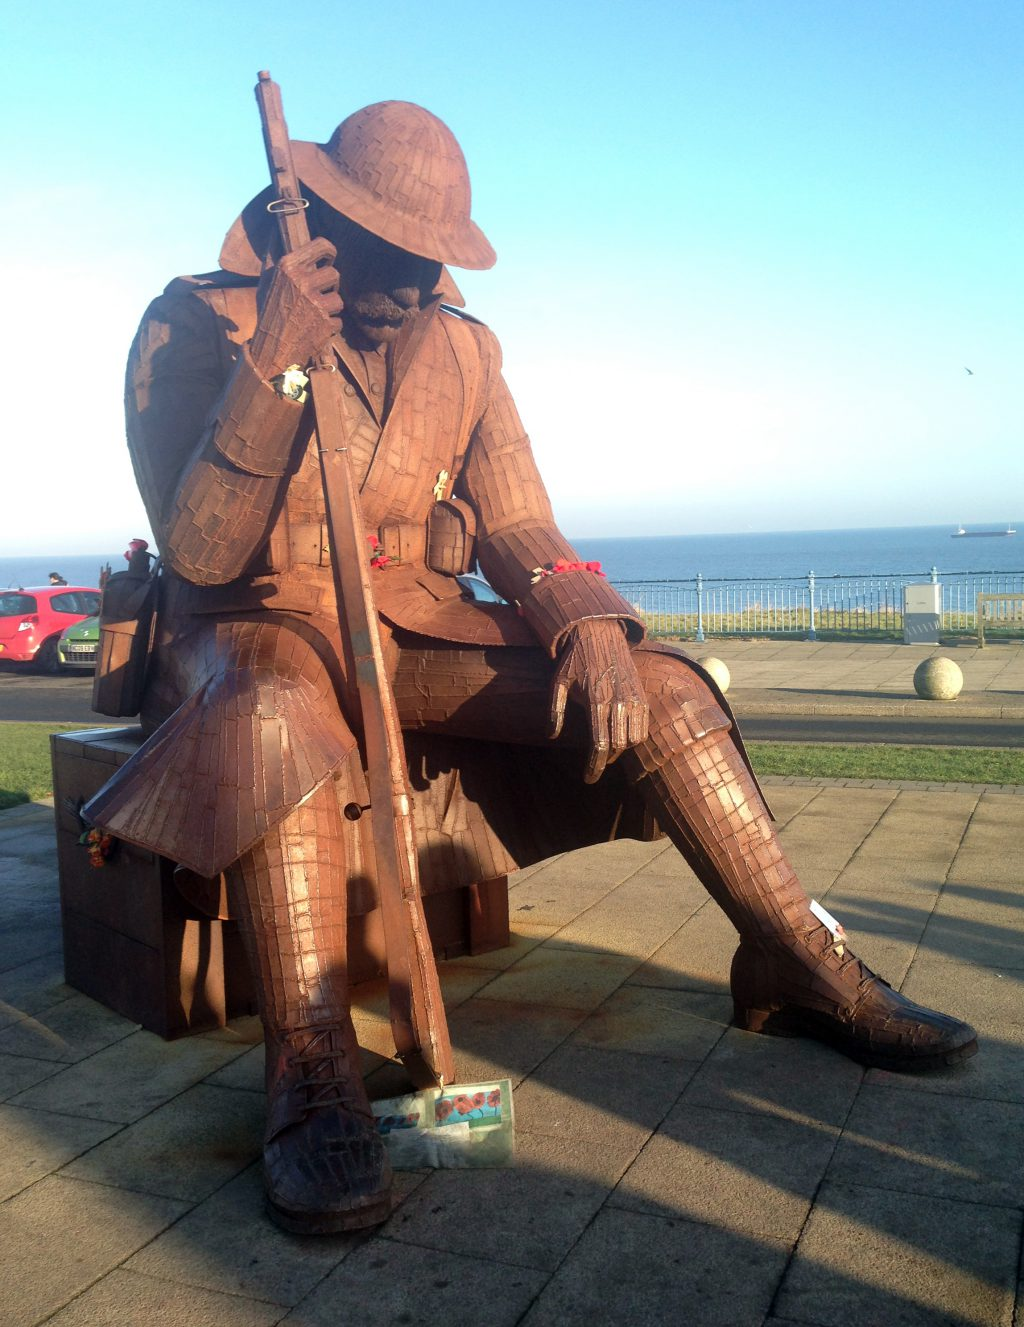 Ray Lonsdale's sculpture at Seaham, Co Durham